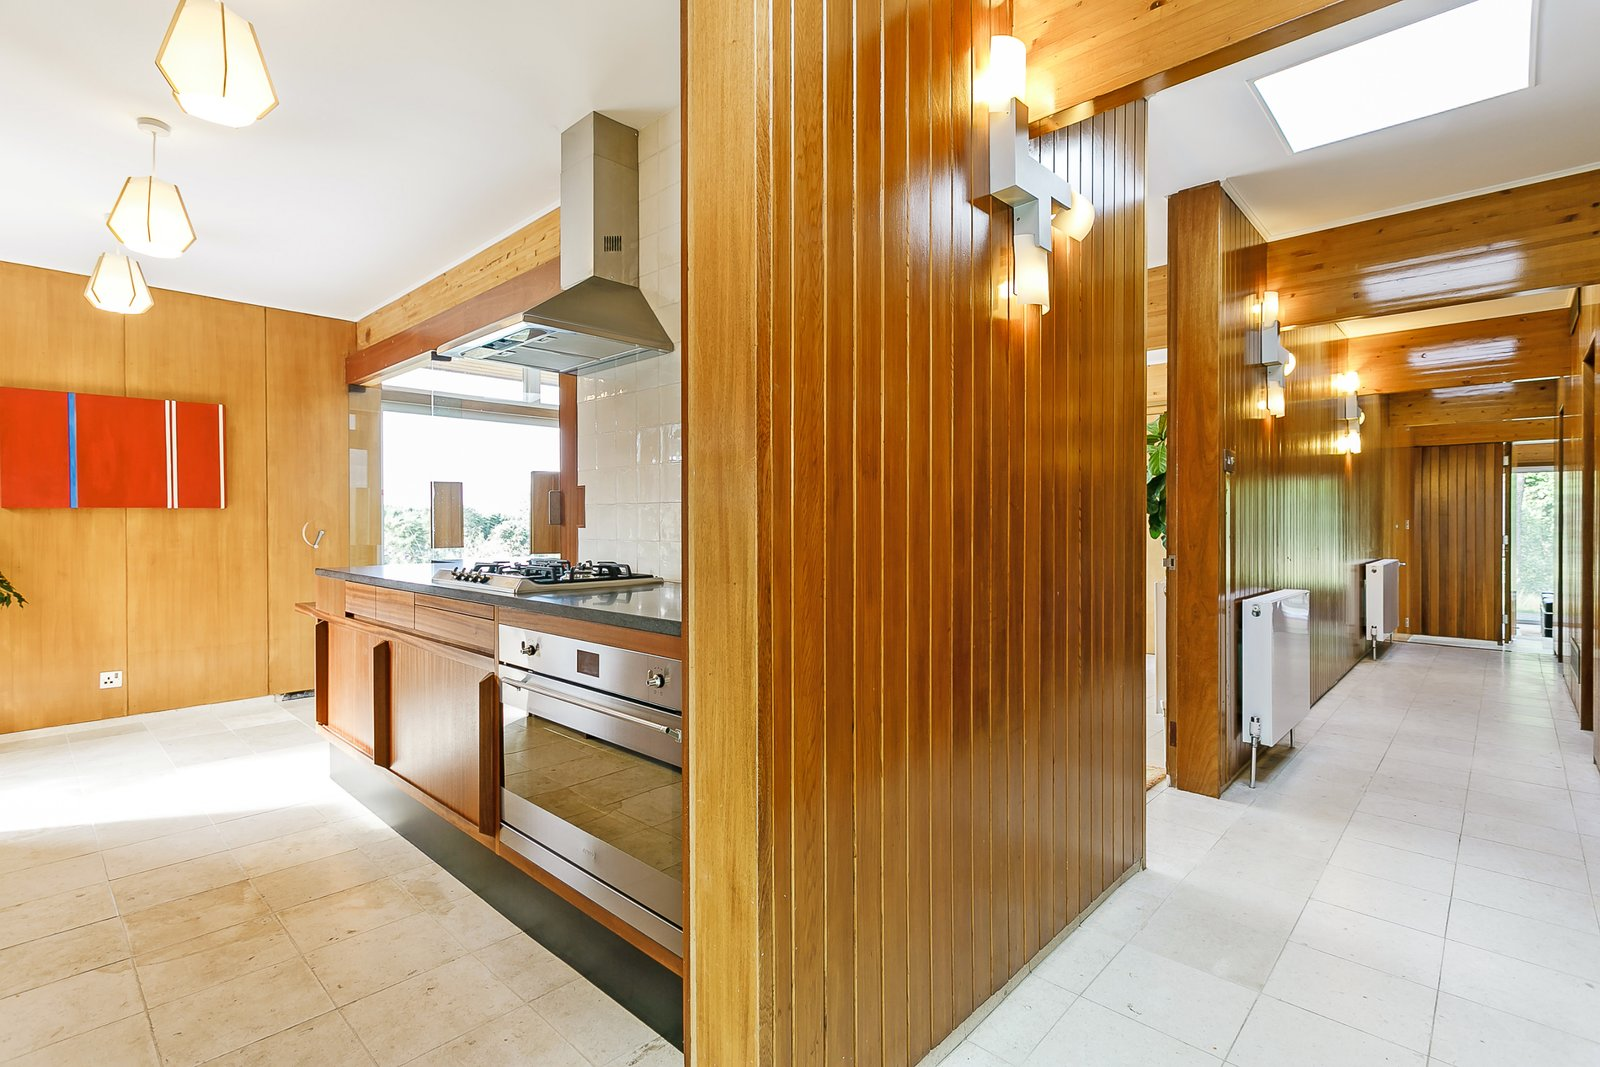 Kitchen, Wall Oven, Range, Wood, Wall, Ceiling, Range Hood, and Subway Tile  Best Kitchen Range Hood Wall Photos from A Modernist Time Capsule by Erno Goldfinger Asks $4M